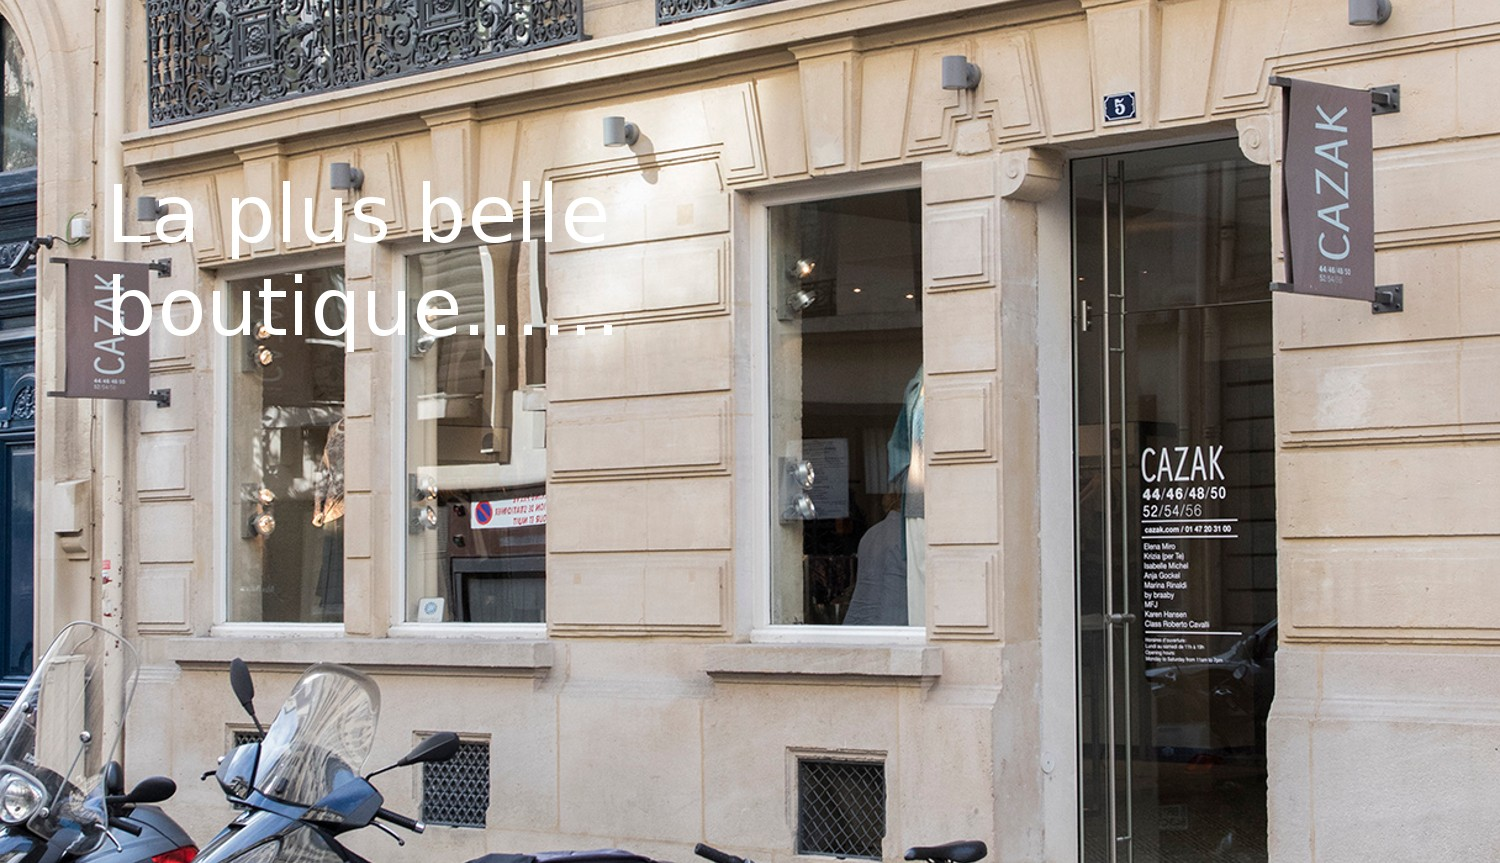 La plus belle boutique……